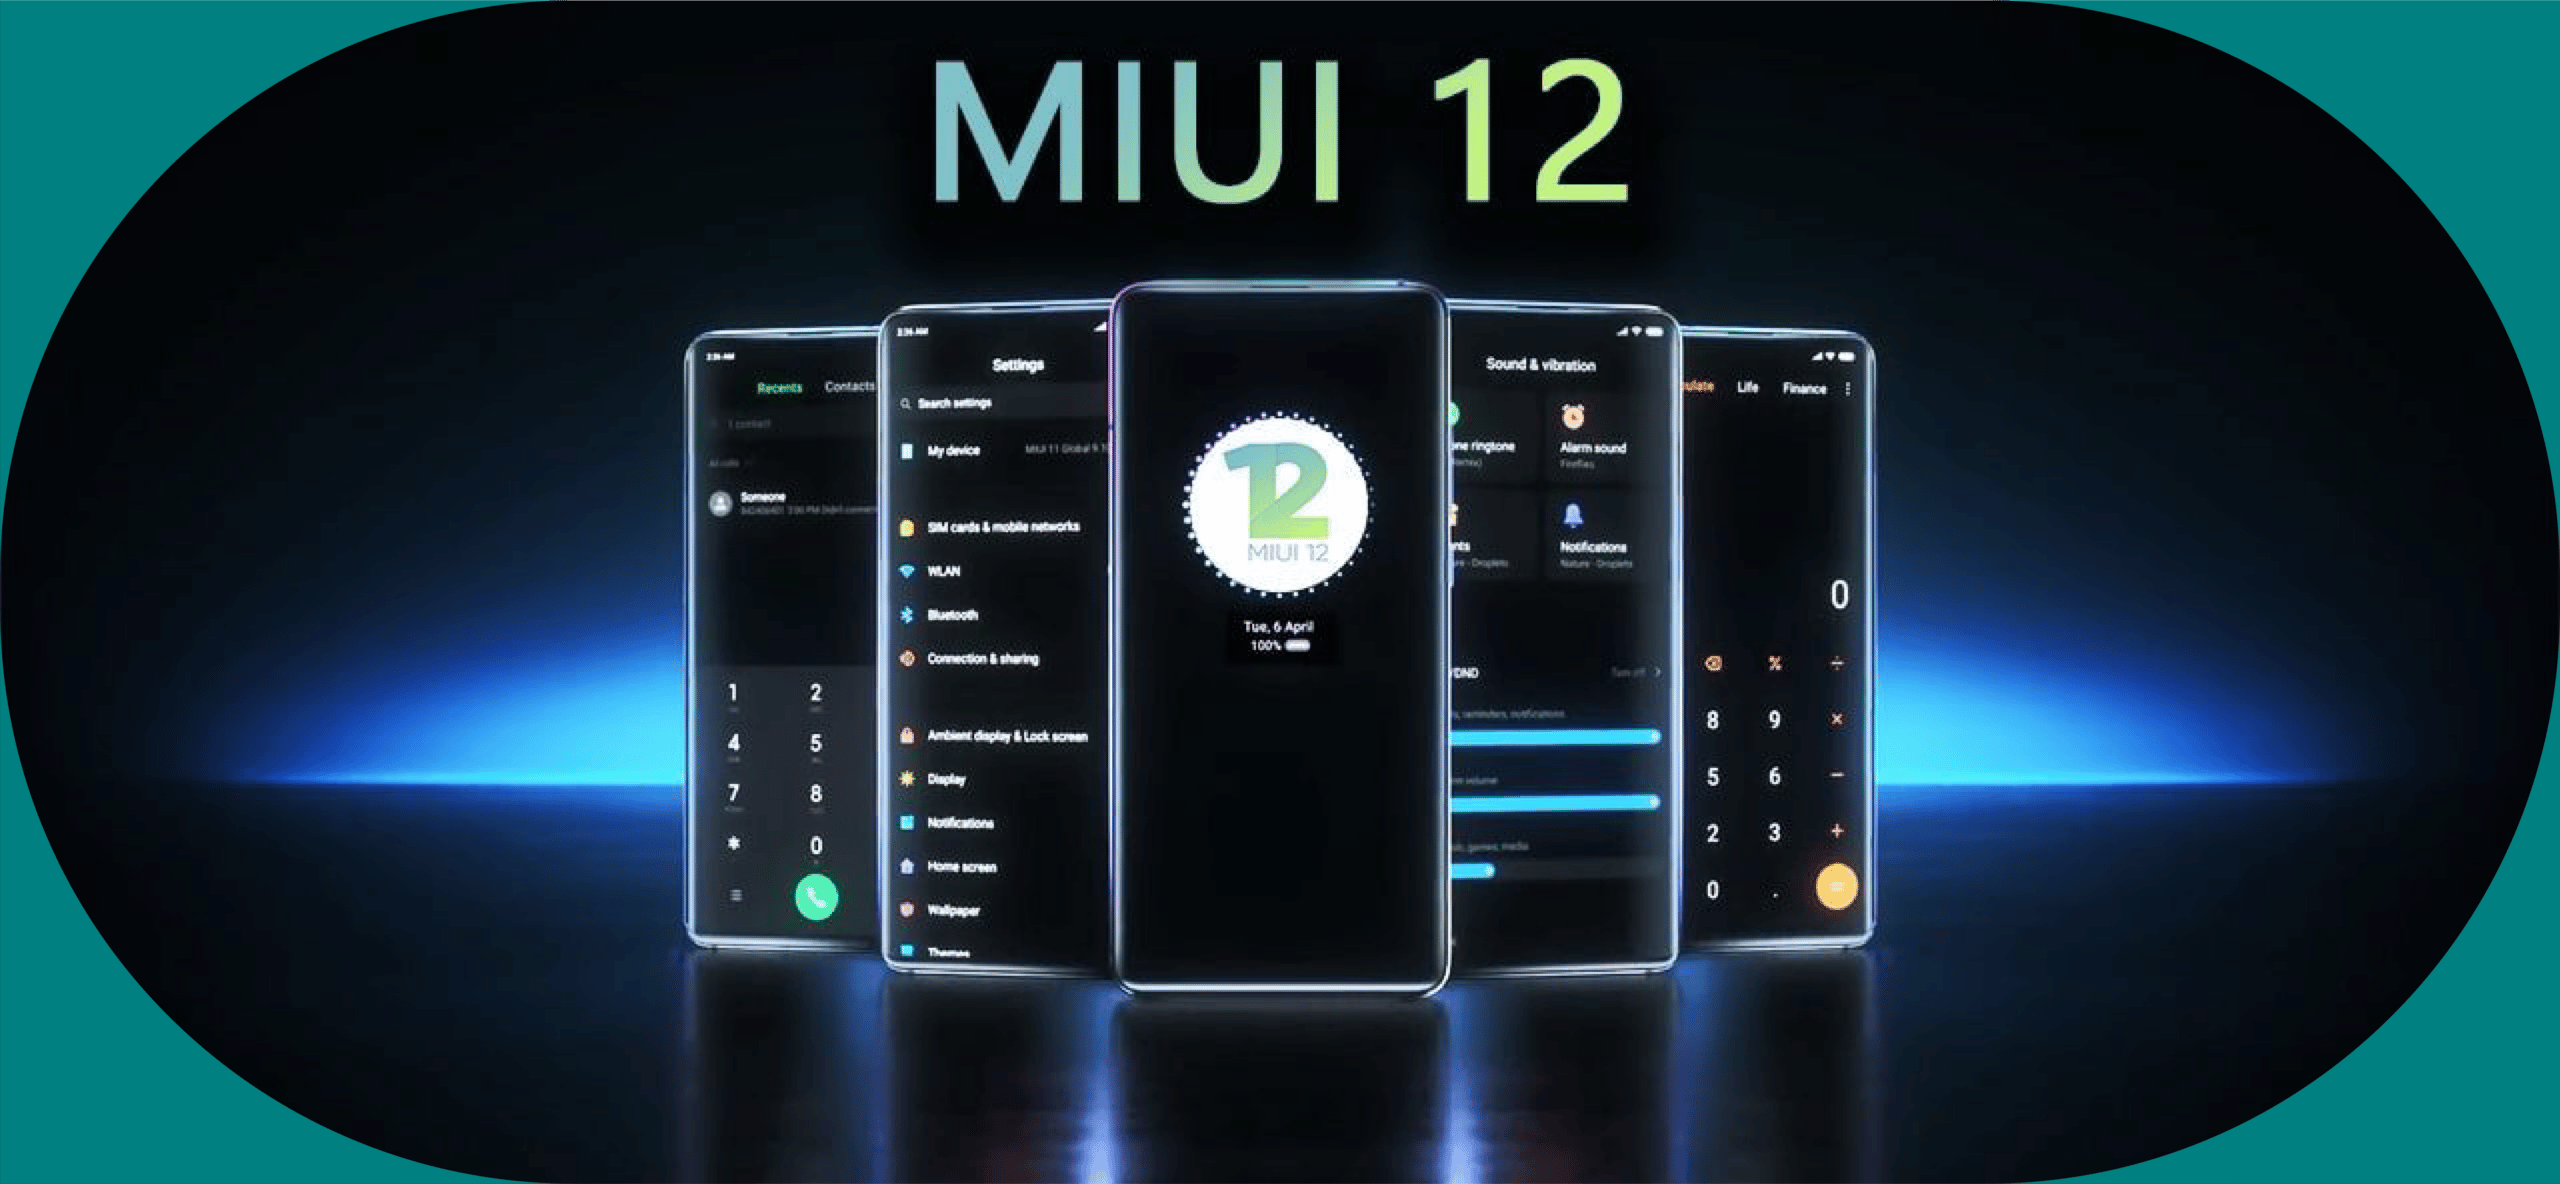 MIUI 12 features: Xiaomi's operating system living up to the hype